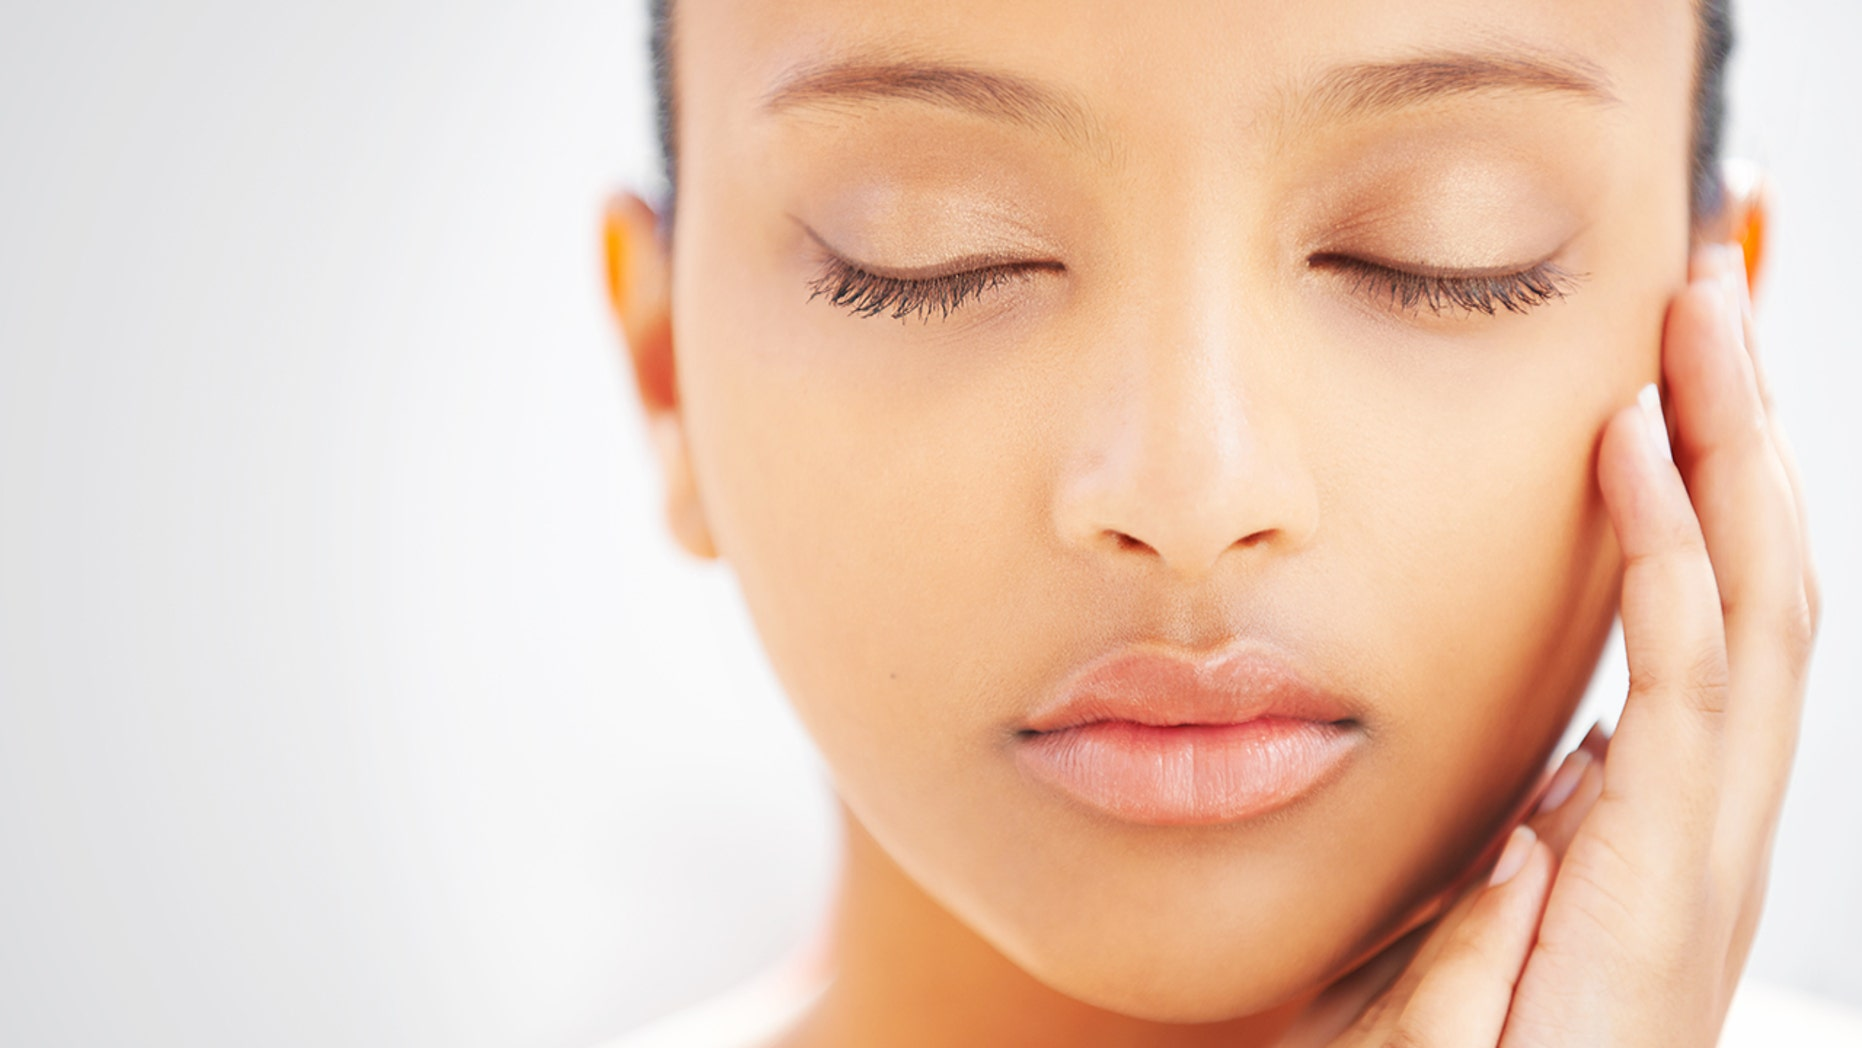 Follow these tips for a brighter glowing complexion